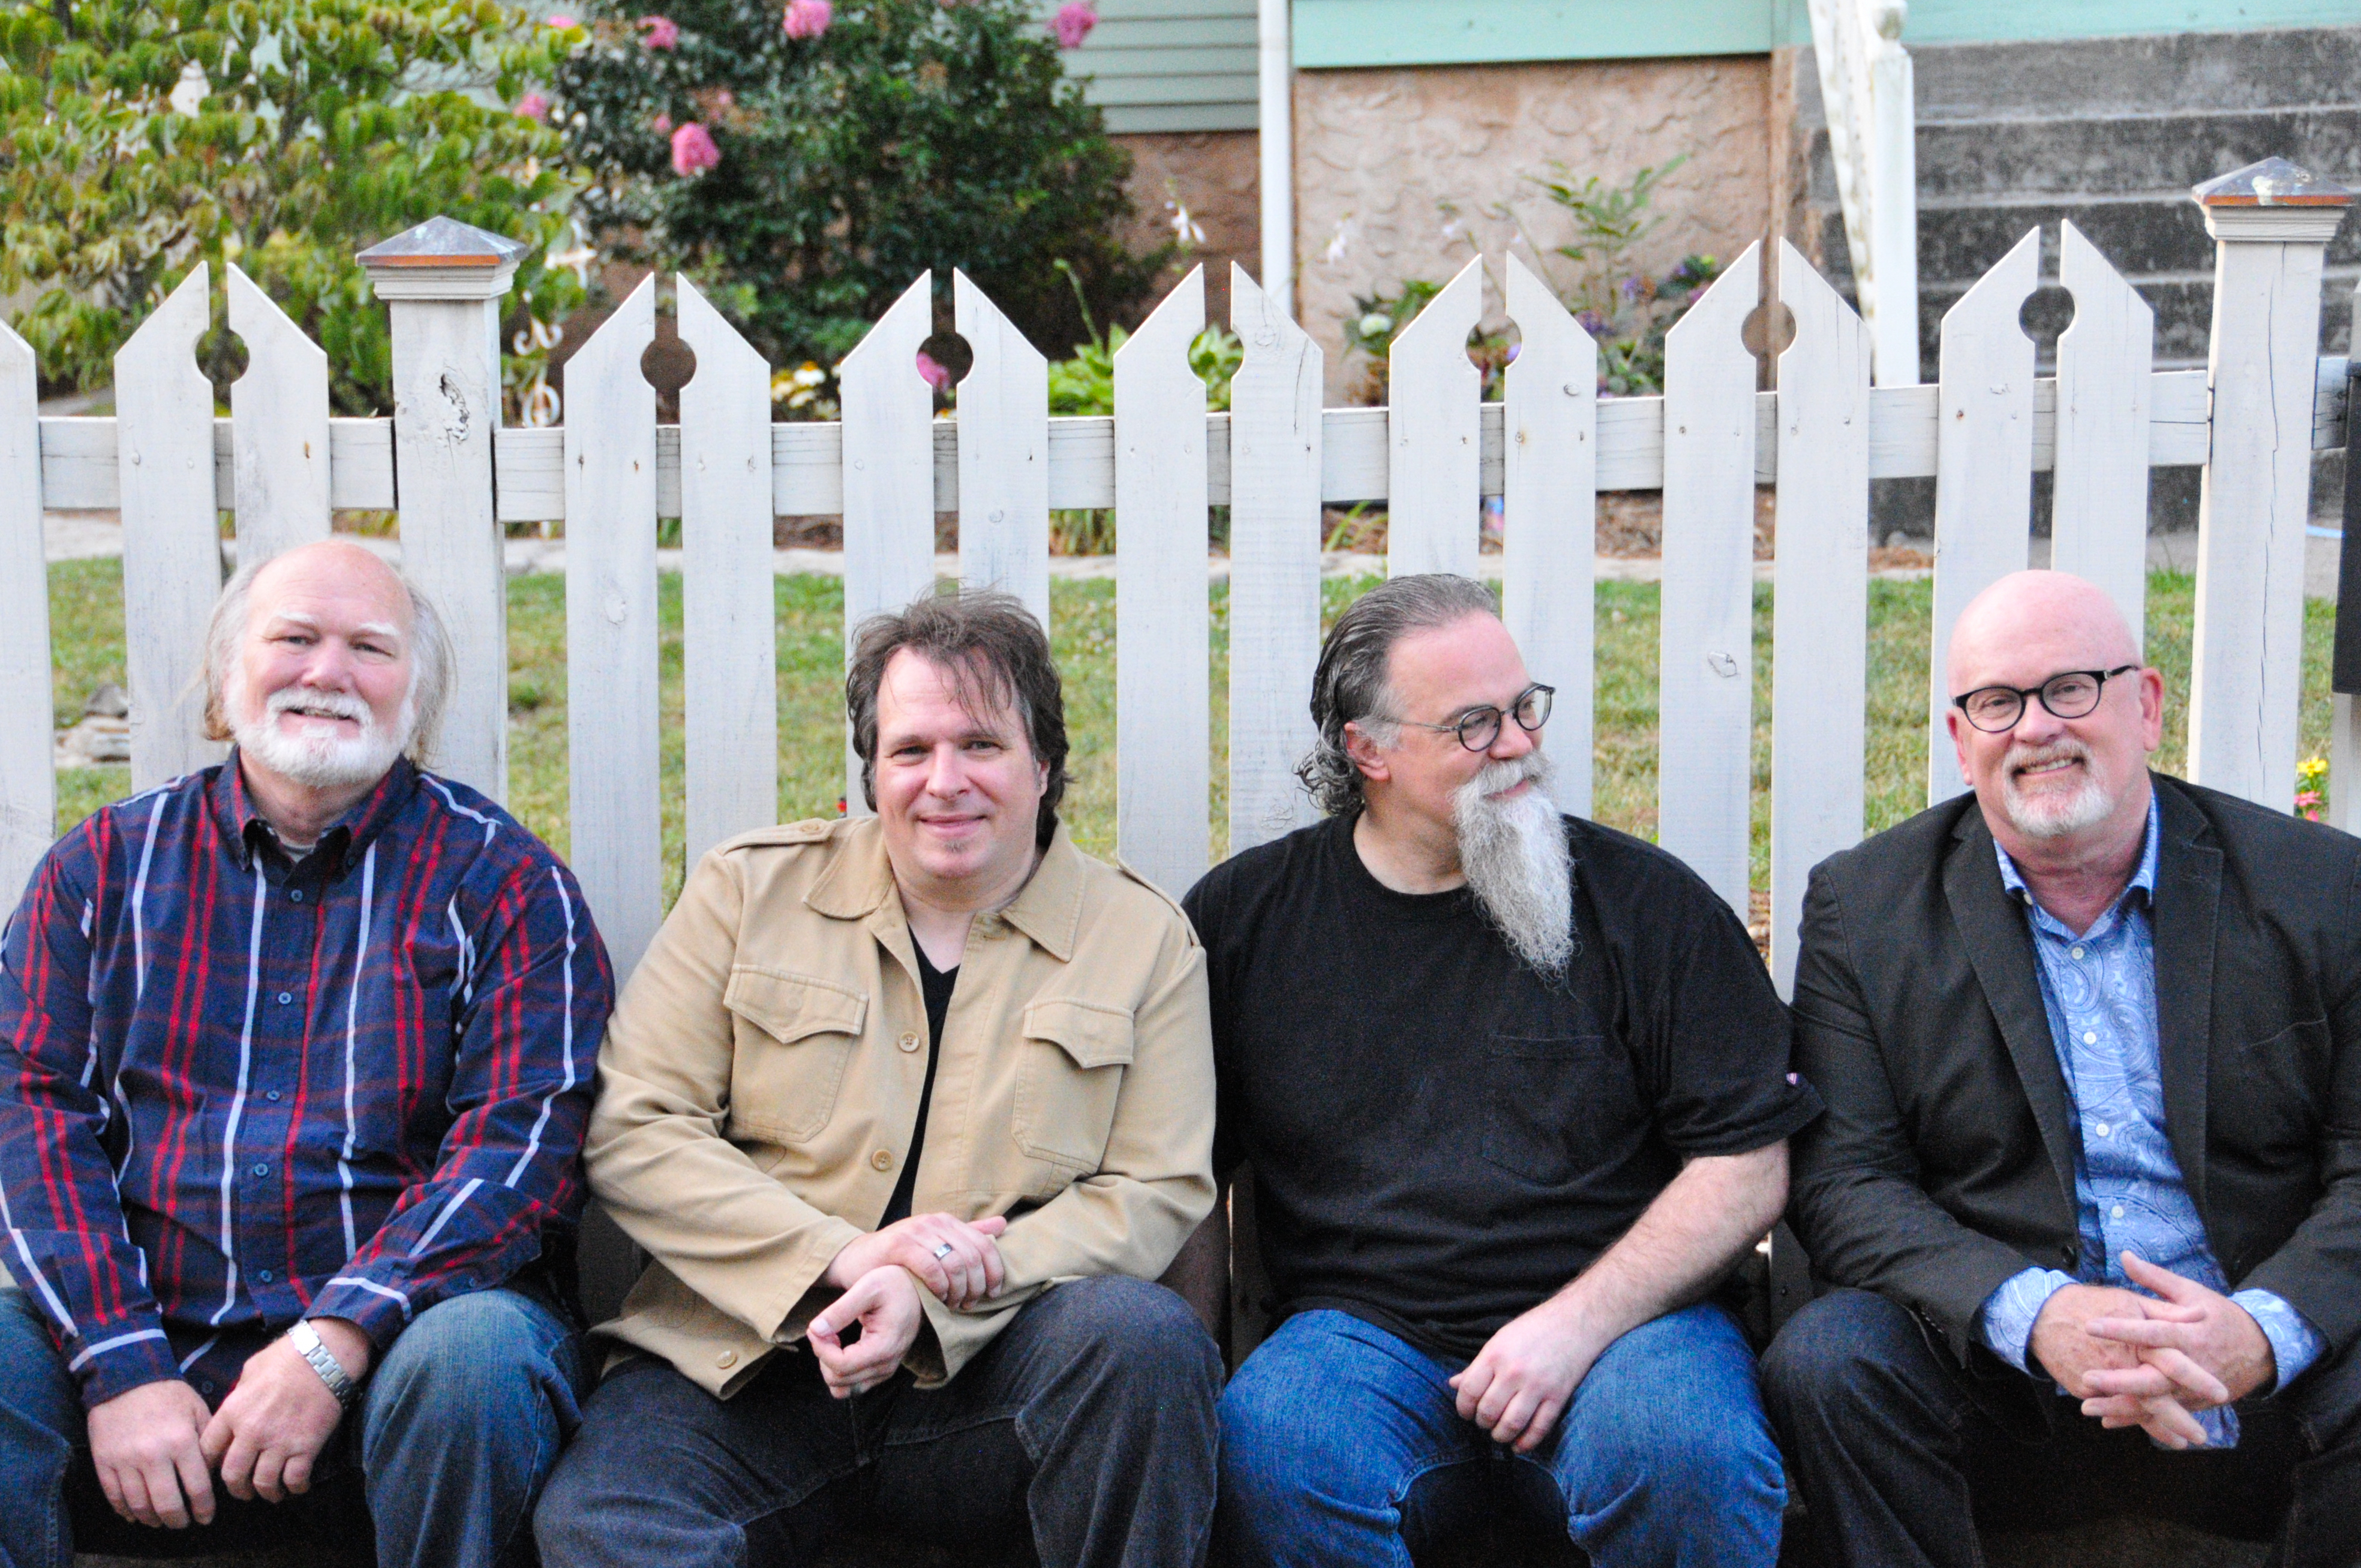 THREE FORMER MEMBERS OF POET VOICES ANNOUNCE THE FORMATION OF HIGHLAND PARK